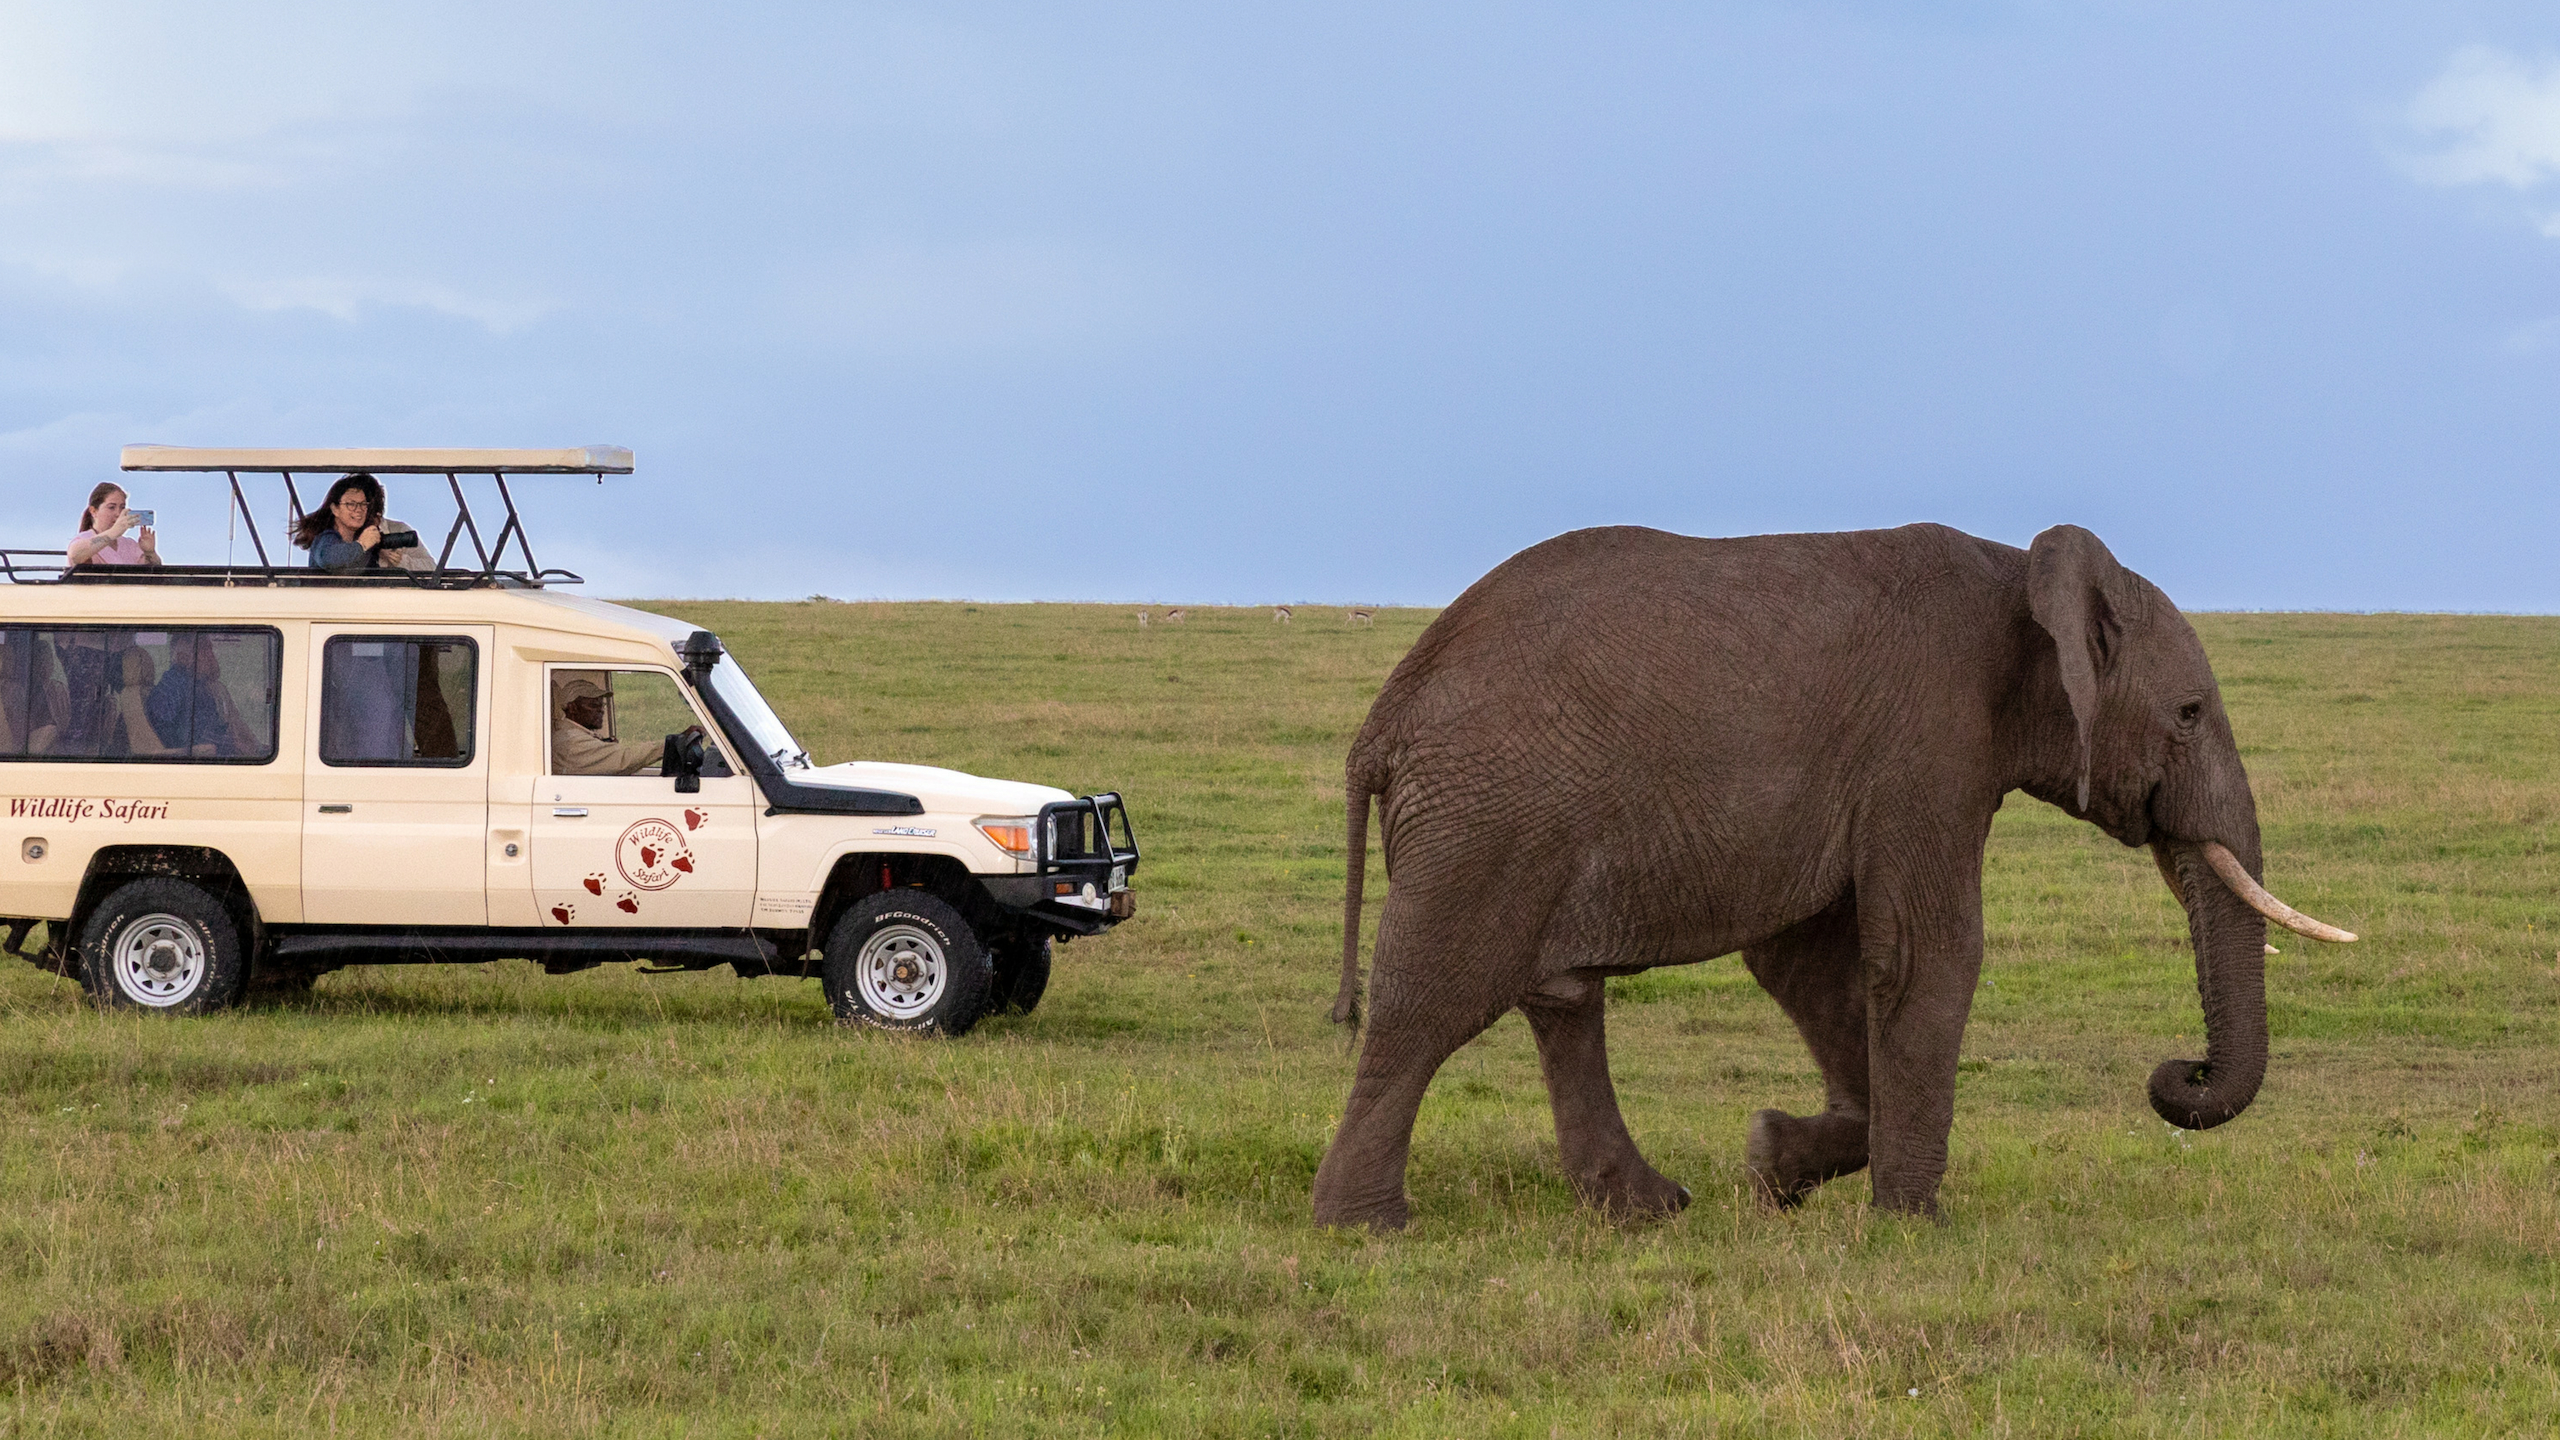 Game drives in Kenya are as exciting as they are memorable. © Wildlife Safari